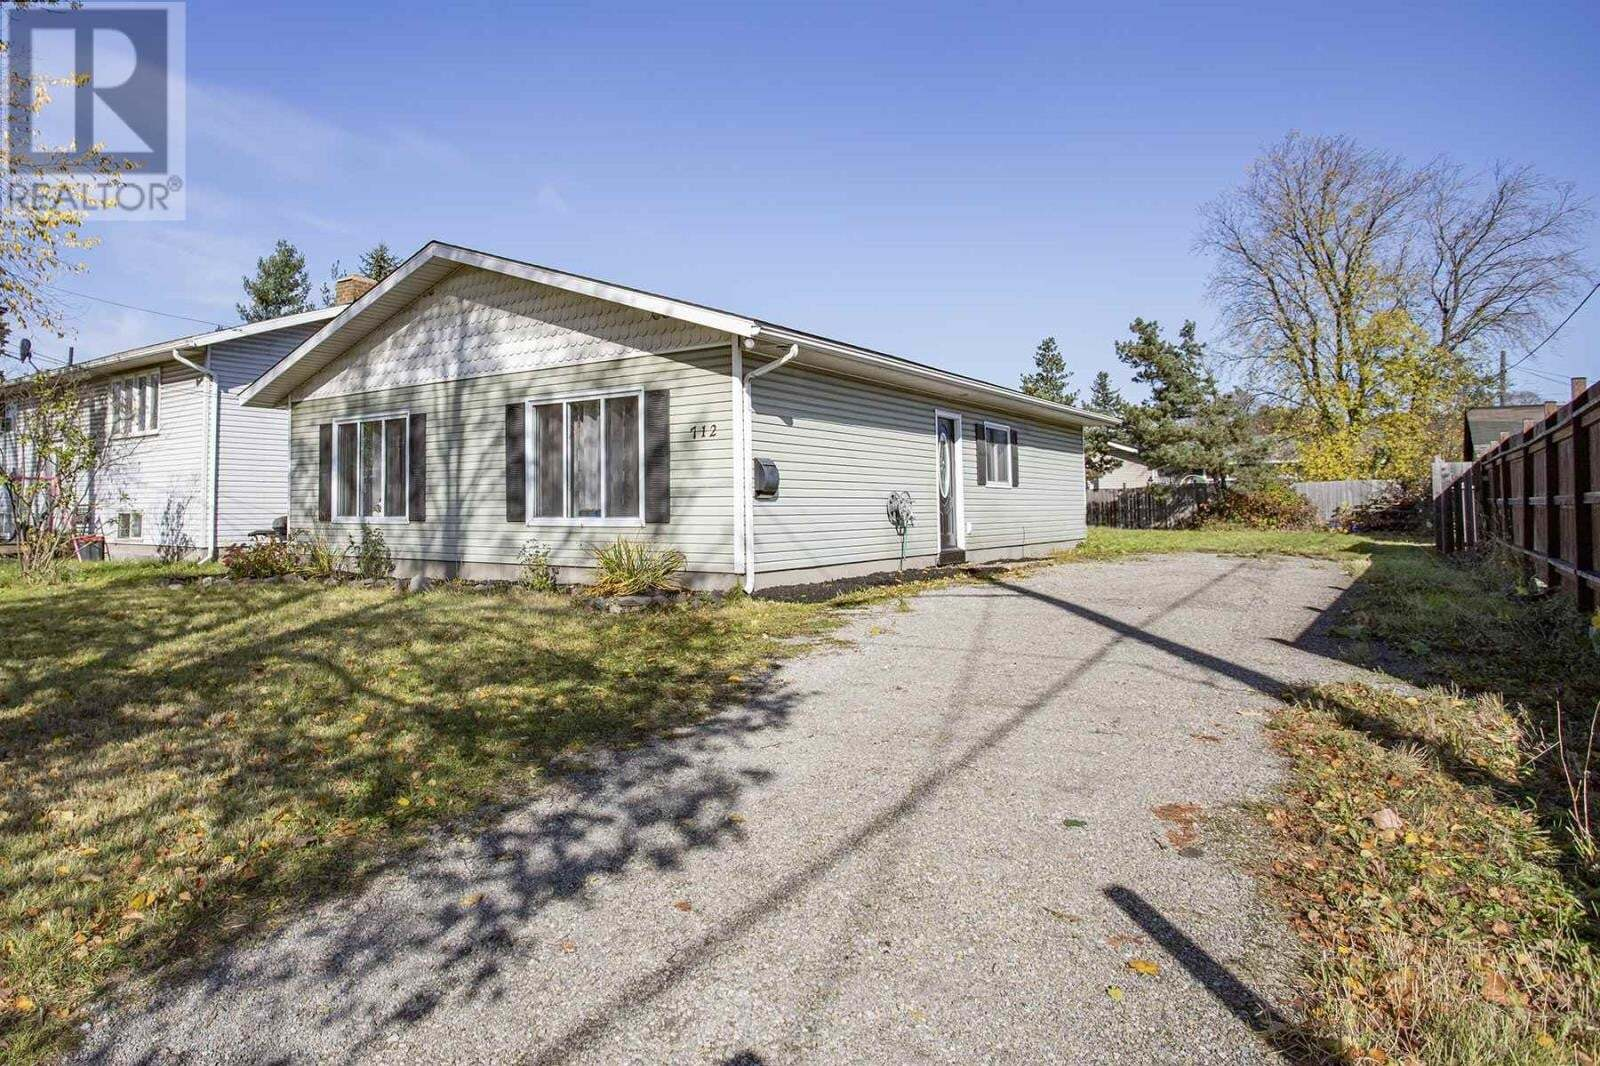 House for sale at 712 Dyment St Sault Ste. Marie Ontario - MLS: SM130057